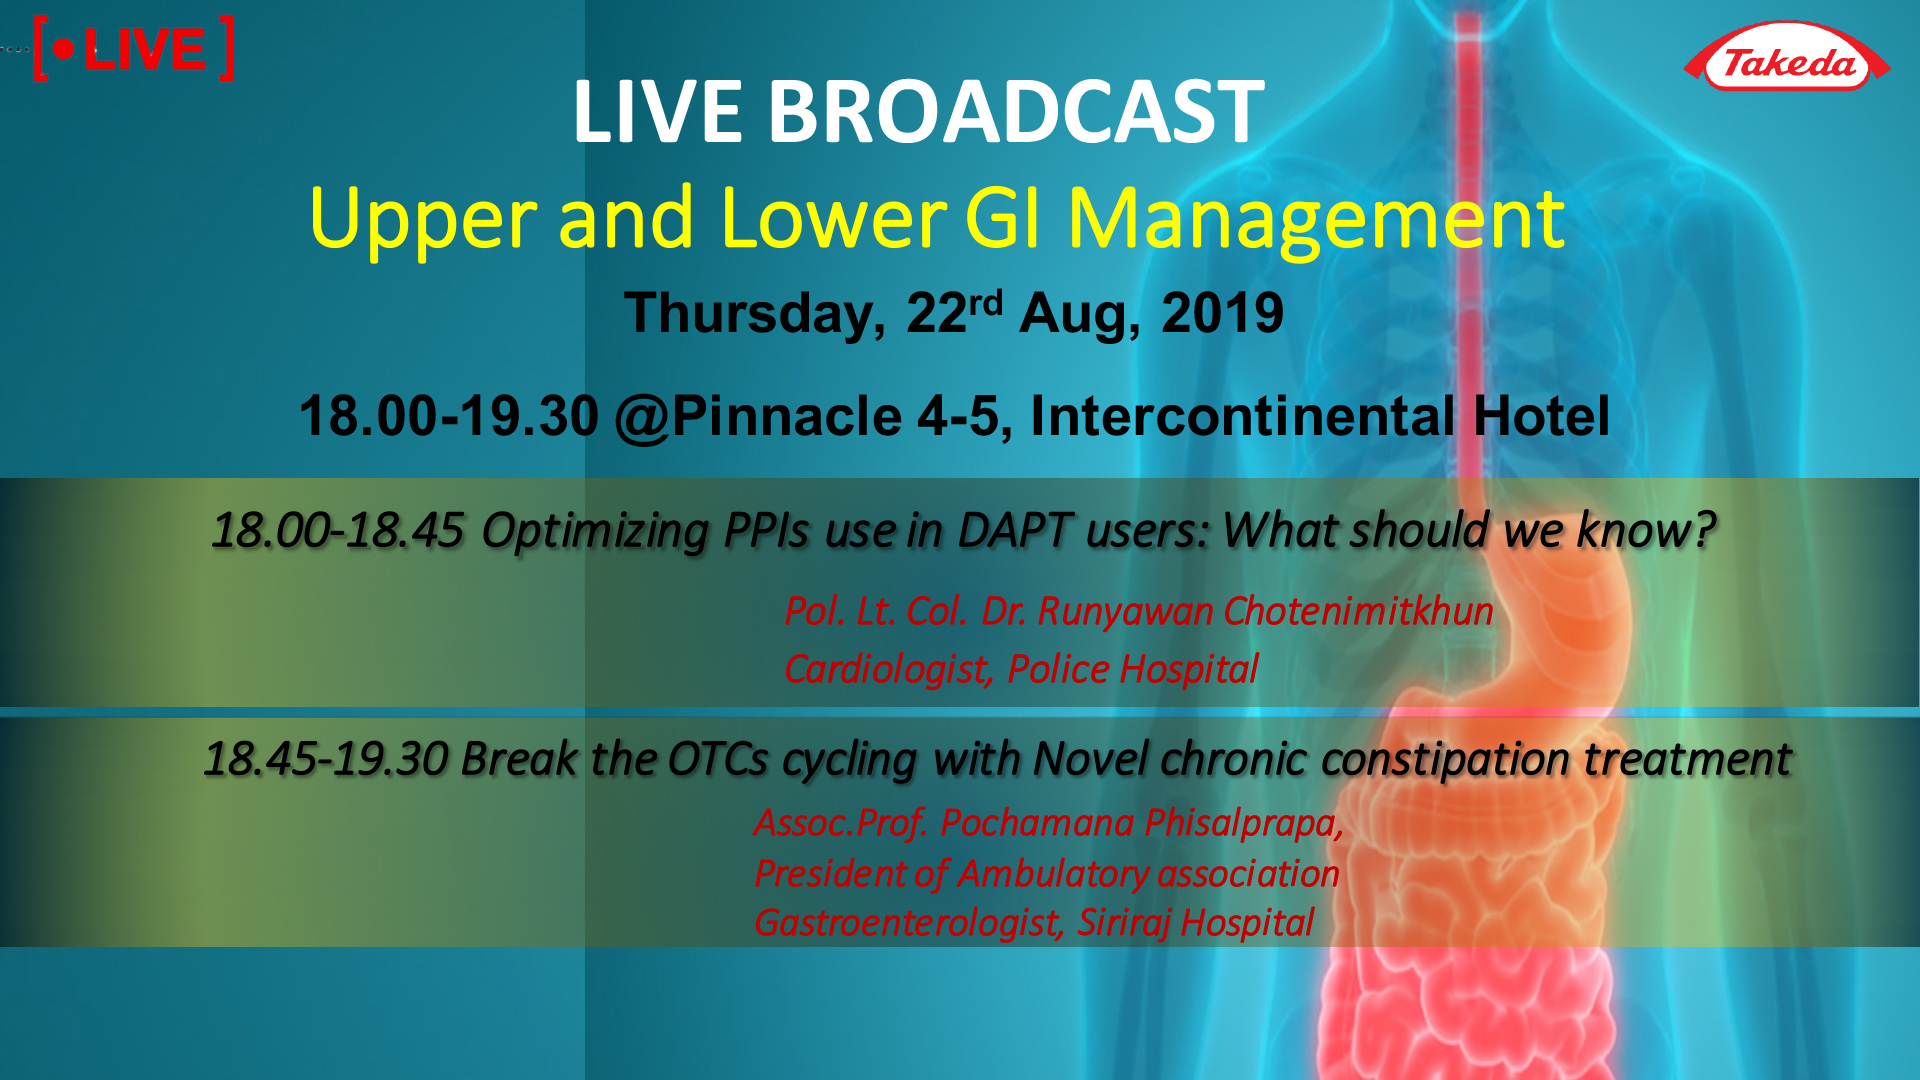 LIVE BROADCAST | Upper and Lower GI Management